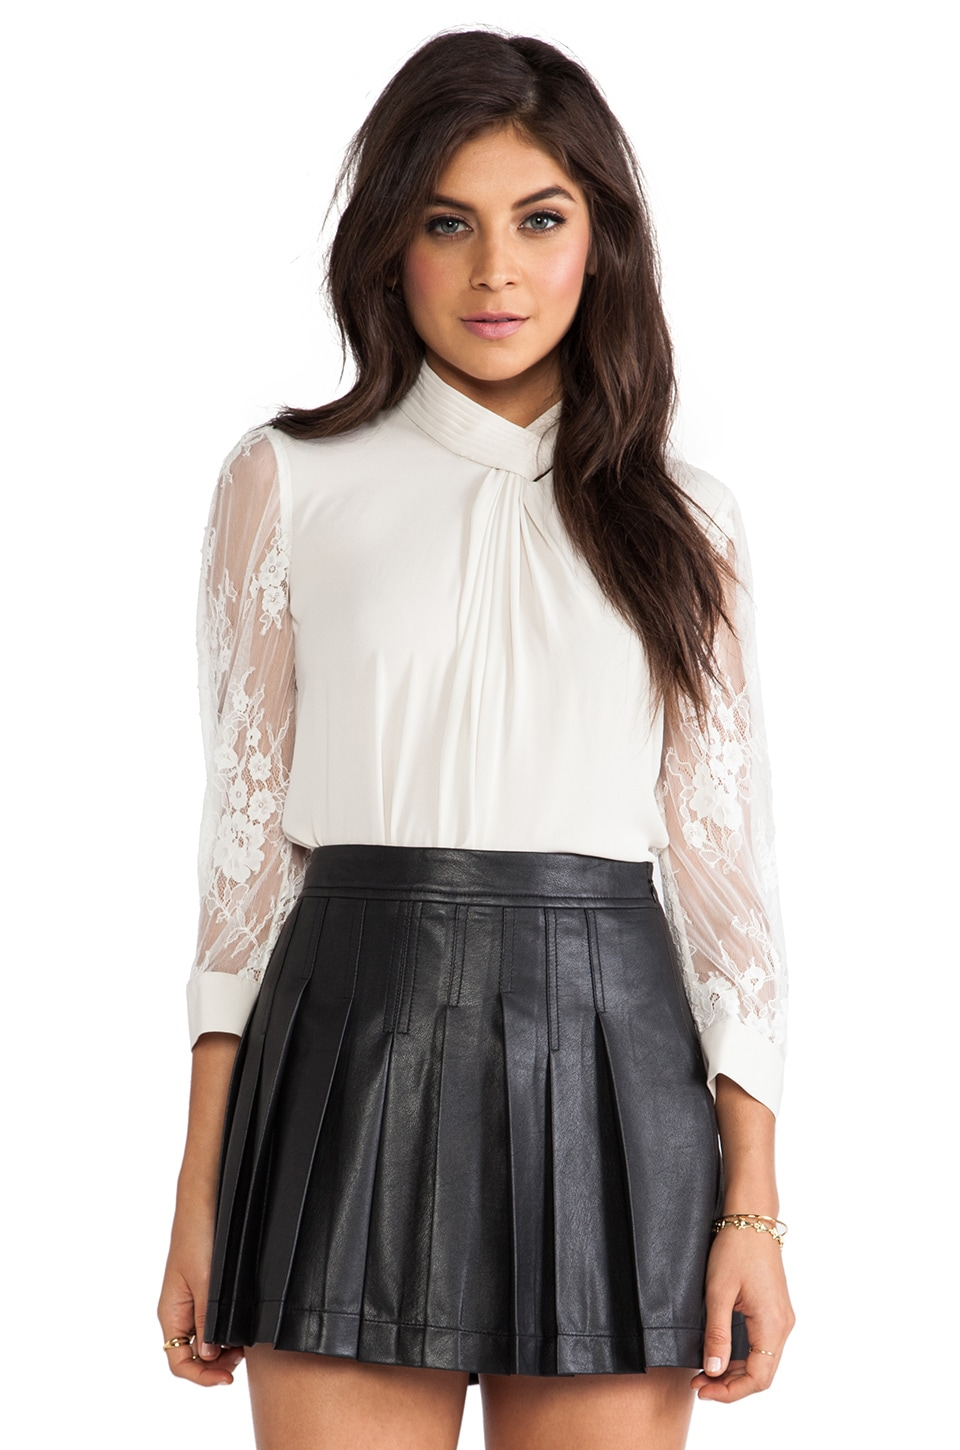 Alice by Temperley Regalia Blouse in Cream